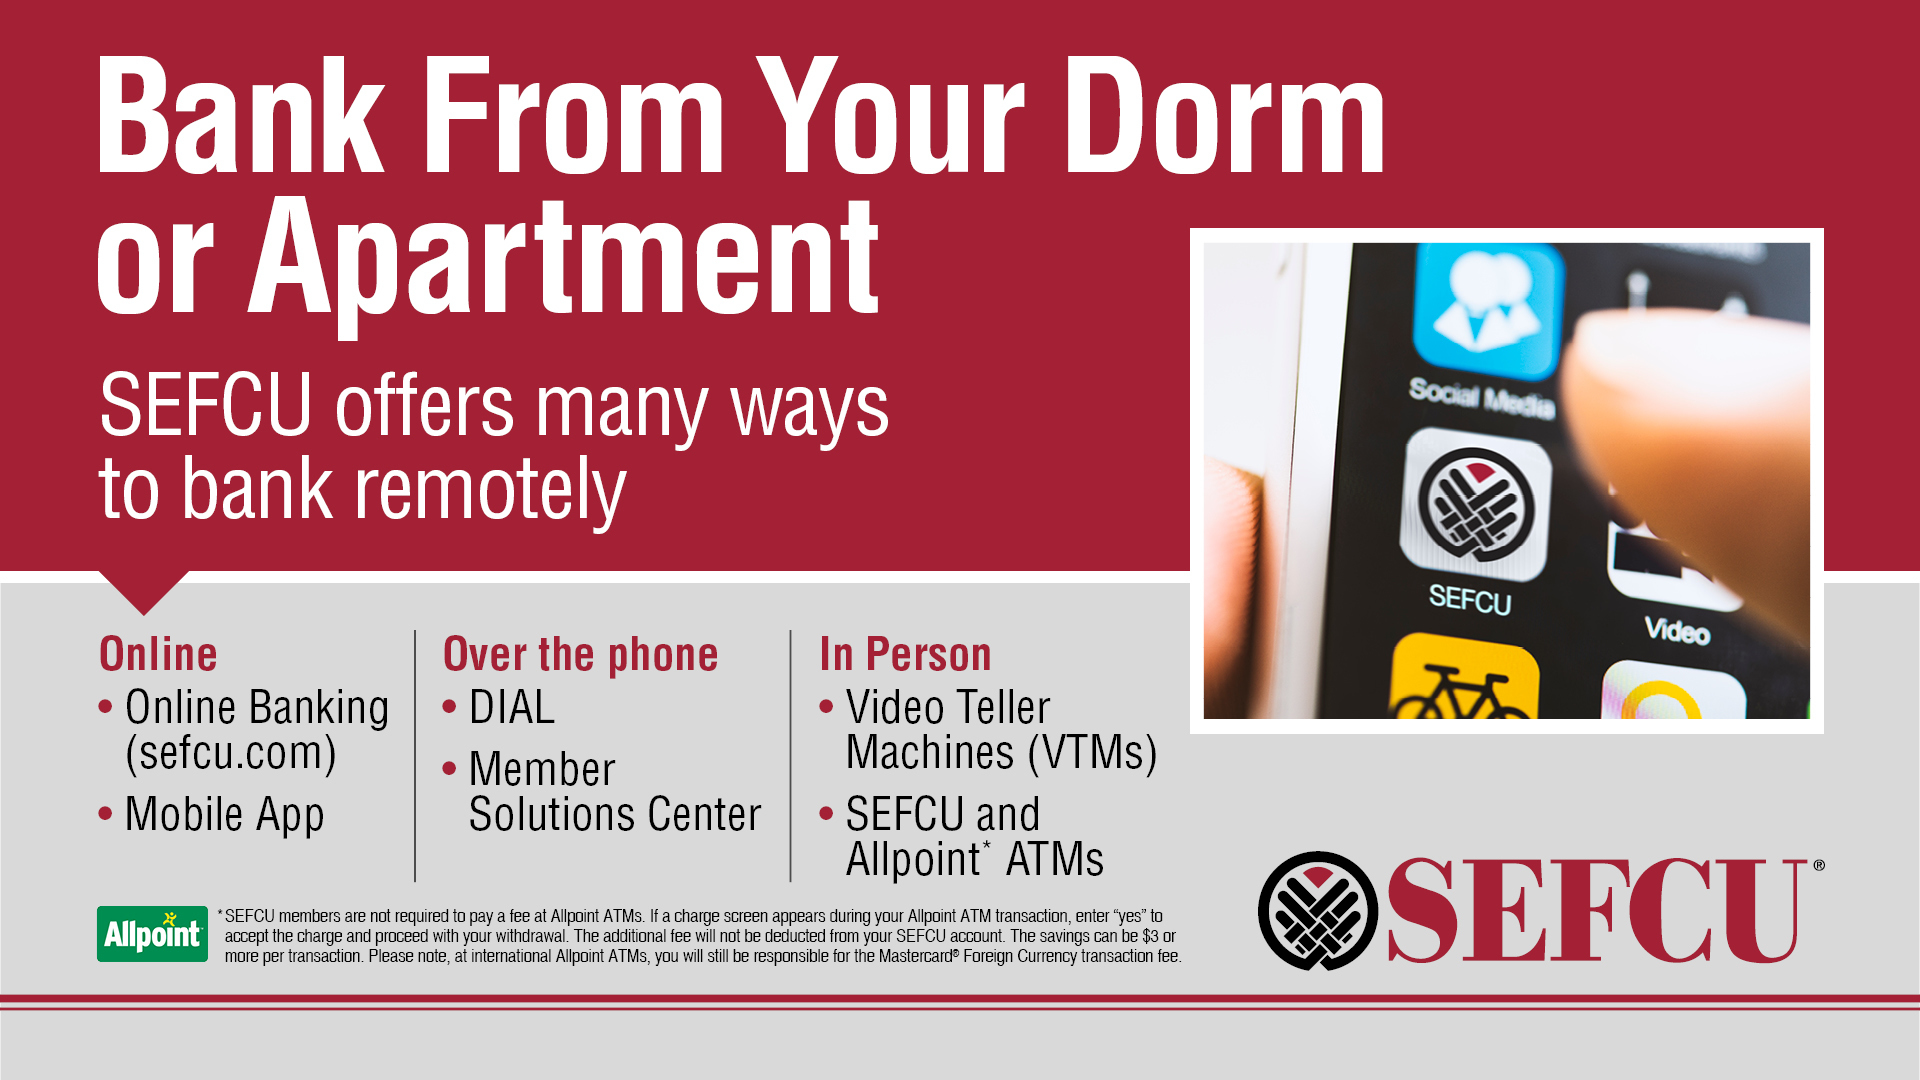 bank from your dorm or apartment. SEFCU offers many ways to bank remotely. Online at sefcu.com or mobile app. Over the phone and in person with video teller machines and SEFCU and ballpoint ATMS. SEFCU logo. SEFCU app icon on phone.